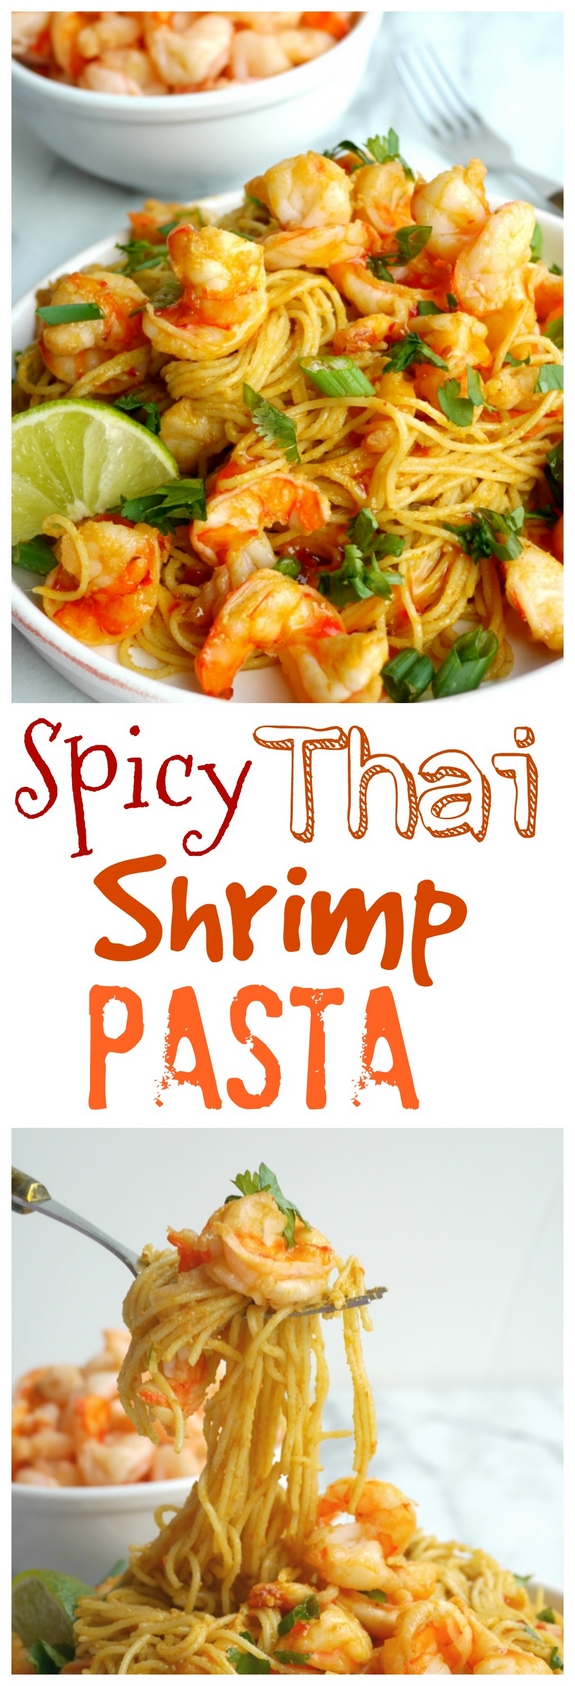 Spicy Thai Shrimp Pasta from NoblePig.com